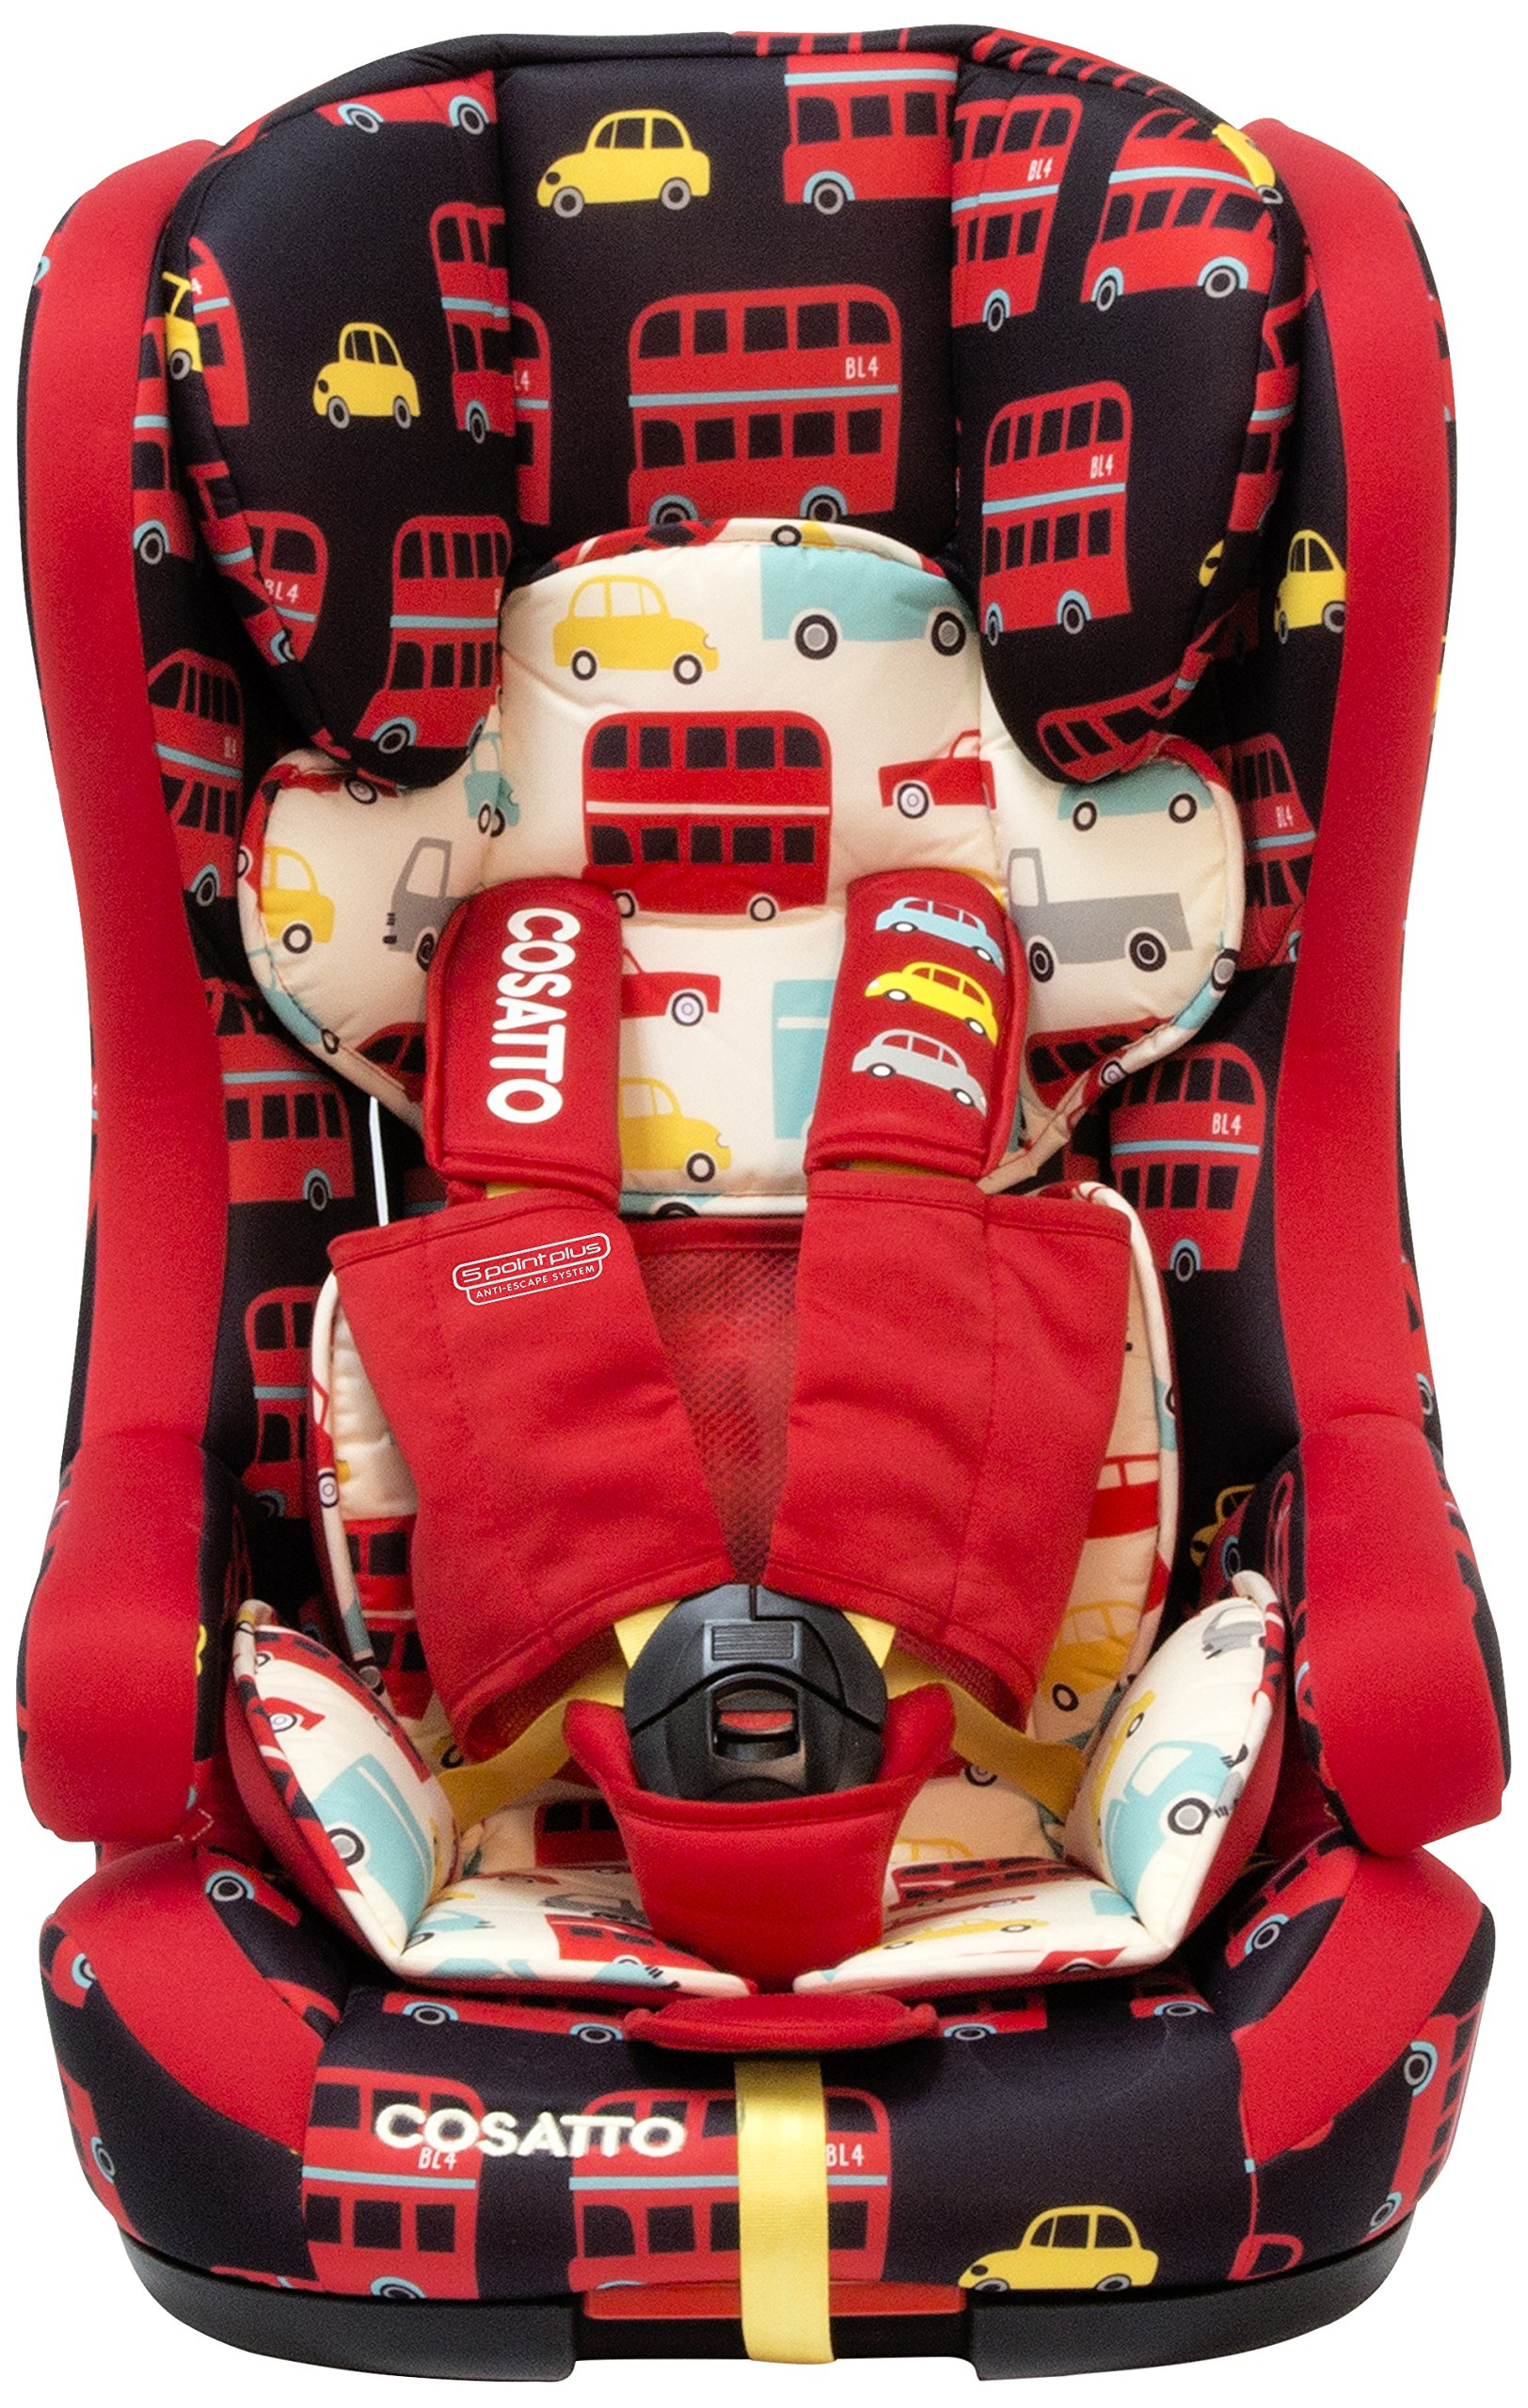 Cosatto Hubbub Isofix Car Seat Group 1 2 3, 9-36 kg, Hustle Bustle Cosatto Hubbub's that exceptional creature - a group 123 car seat with ISOFIX; this means you can just click and go-no reinstalling; suitable from 9 kg to 36 kg (group 123) Hubbub incudes patented five point plus anti-escape system, reduces harness escapes by 90 percent Side impact protection, with six position headrest; hubbub grows with your child; out pop-off squishy seat liner grows too; it is also reversible 1